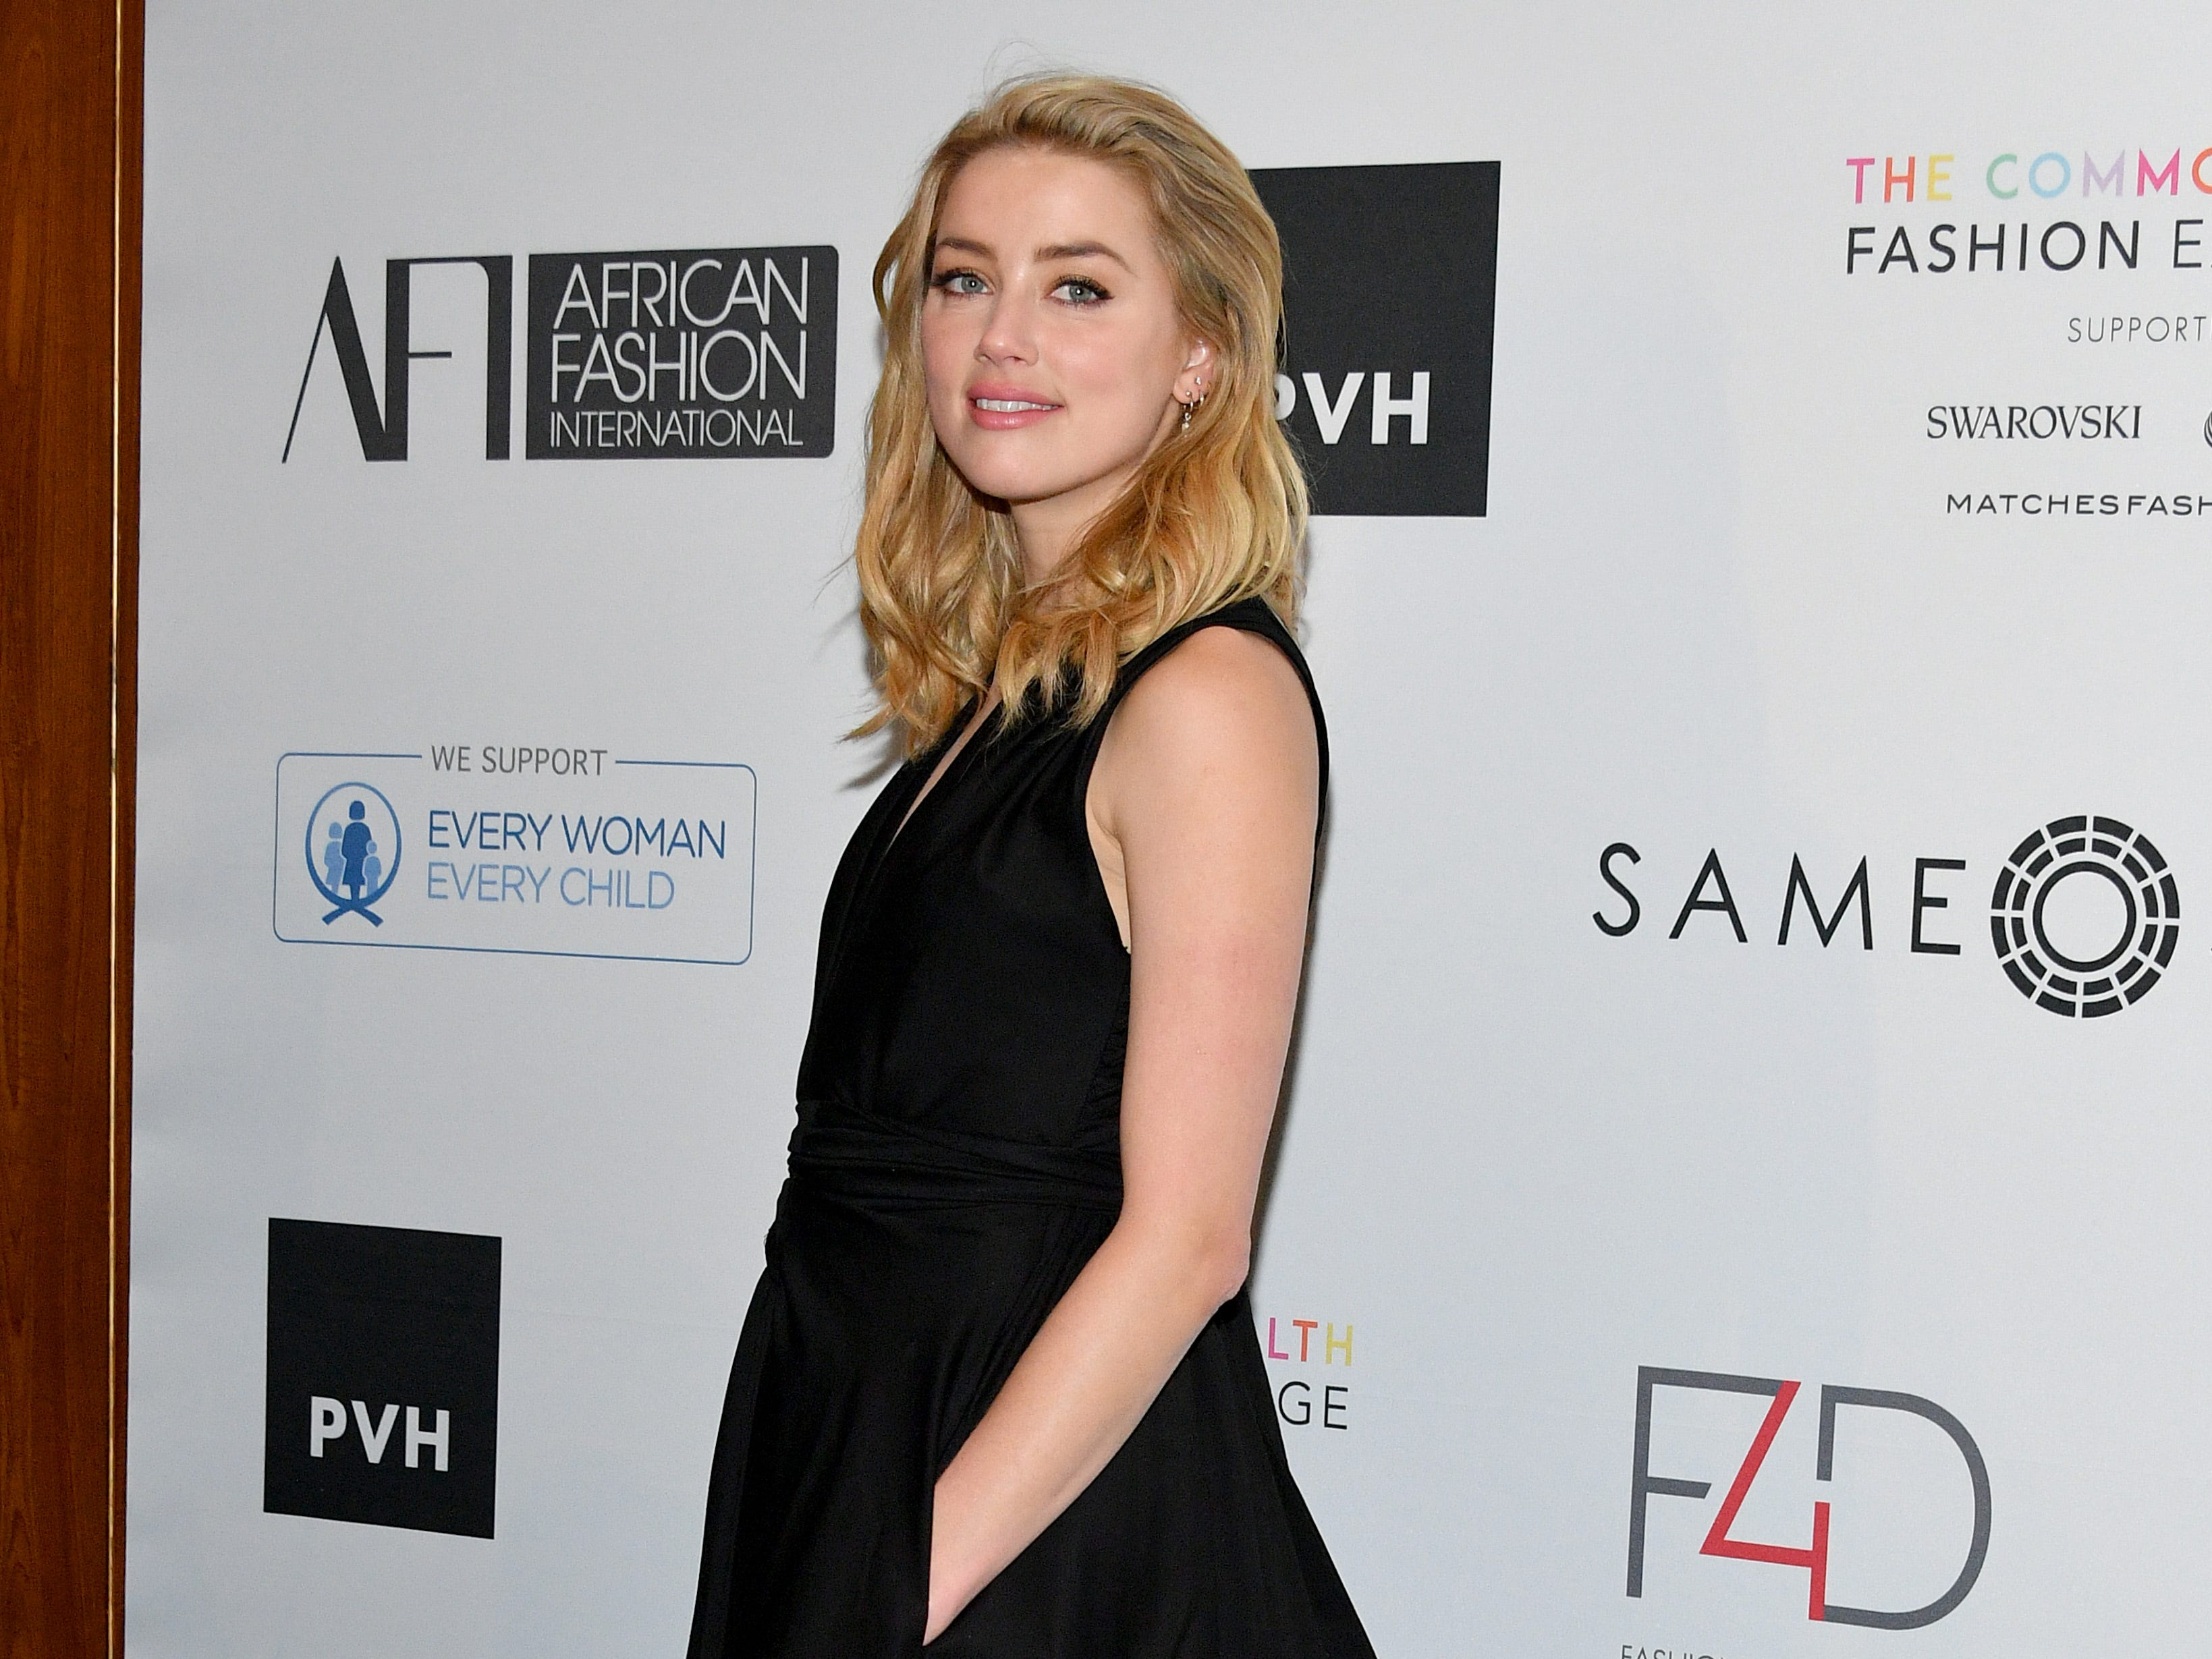 NEW YORK, NY - SEPTEMBER 25:  Amber Heard attends Fashion 4 Development's 8th Annual Official First Ladies Luncheon at The Pierre Hotel on September 25, 2018 in New York City.  (Photo by Dia Dipasupil/Getty Images for Fashion 4 Development) ORG XMIT: 775224002 ORIG FILE ID: 1040047608